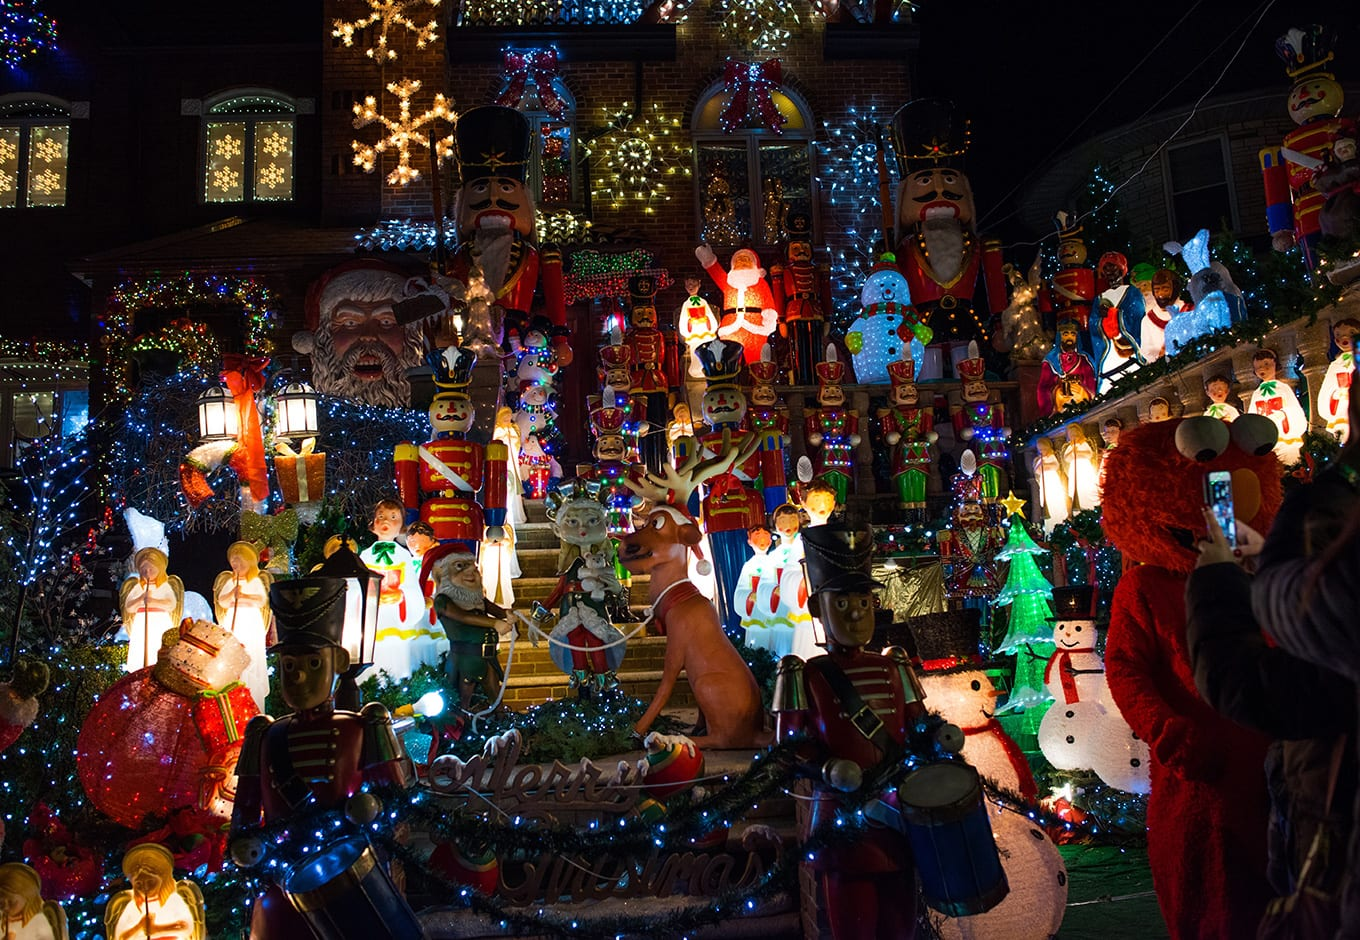 Dyker Heights Christmas Lights 2020: All Your Questions Answered!